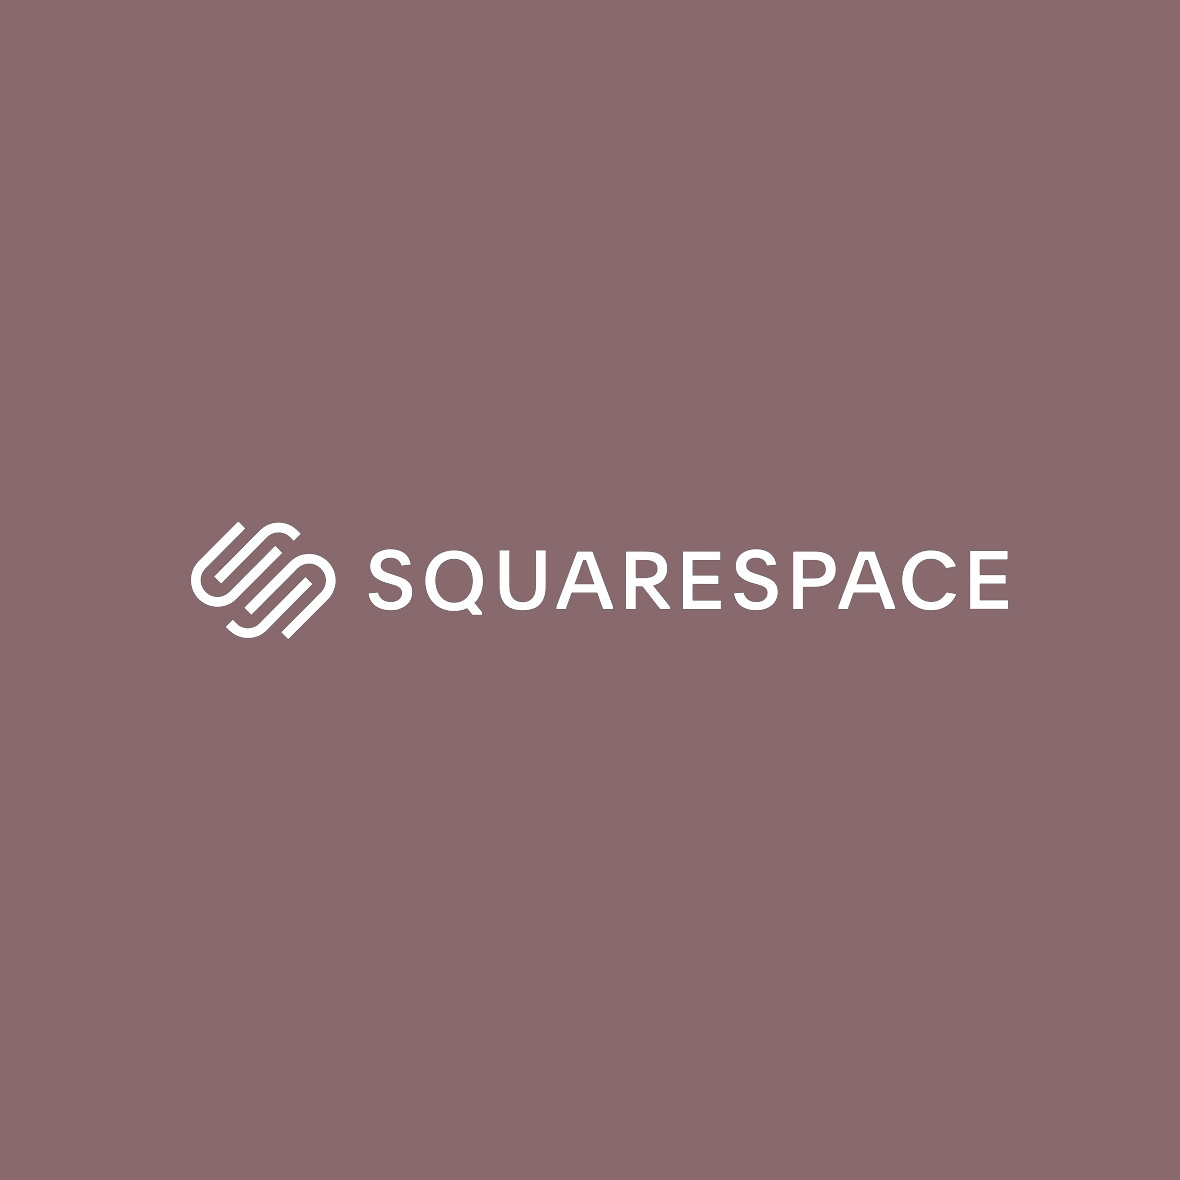 Squarespace Add to Cart